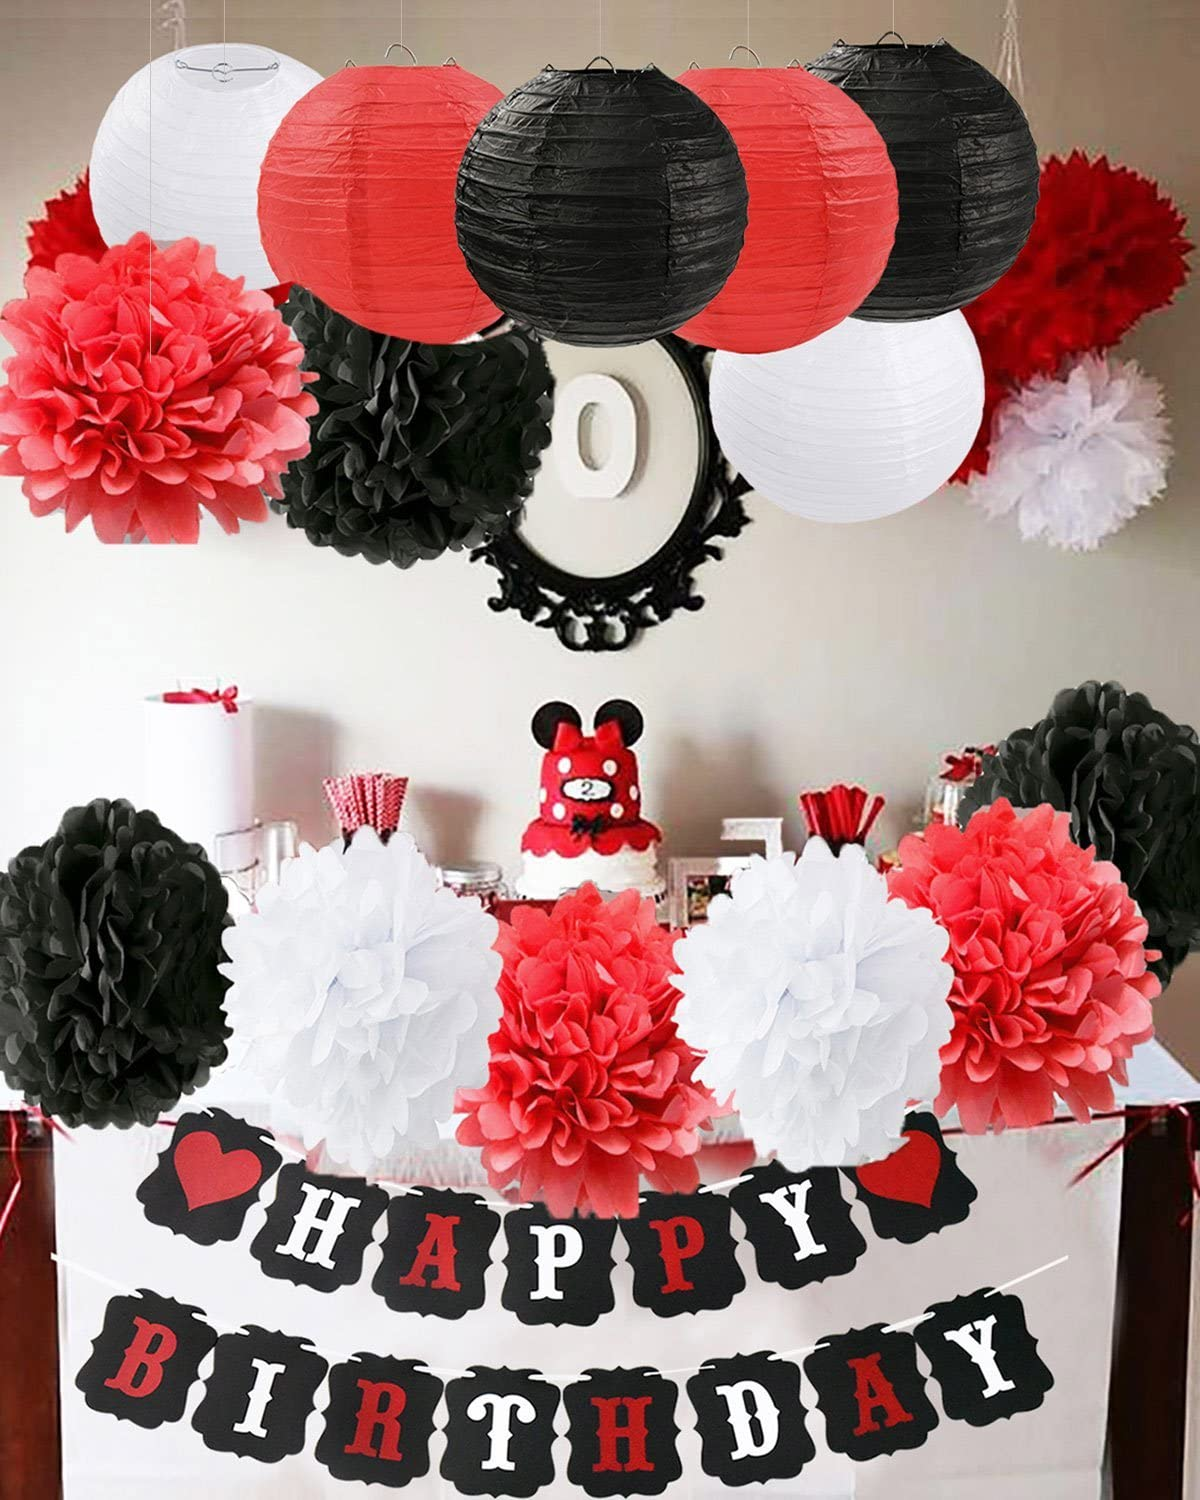 Amazon Com Furuix Mickey Mouse Birthday Party Decorations White Red Black Minnie Supplies Tissue Paper Pom Flowers Lanterns For Happy Baners Toys Games